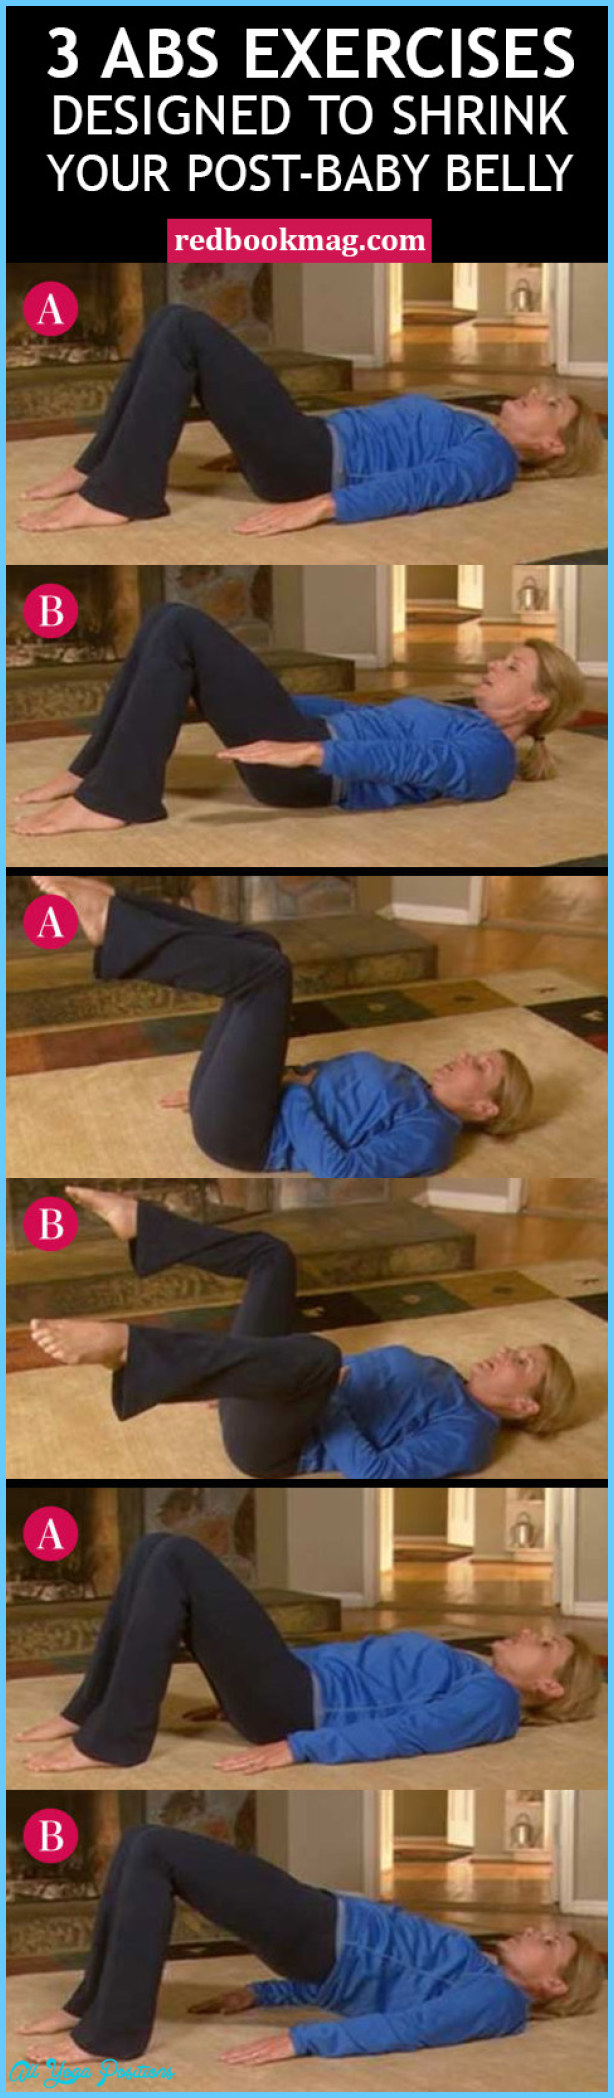 Ab Exercises For After Pregnancy_8.jpg